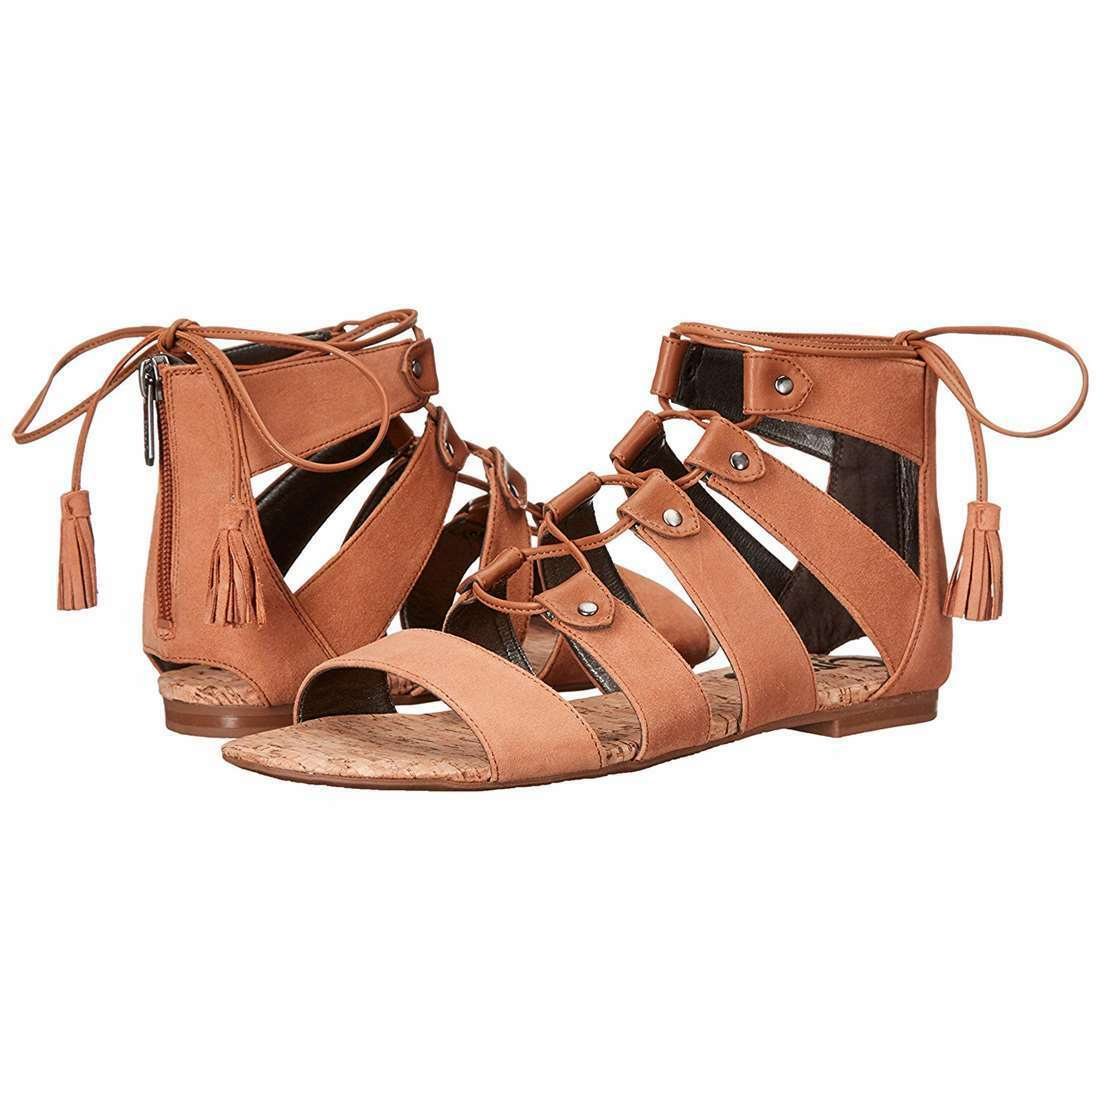 Circus by Sam Edalman donna NEW Gibson Gladiator Sandals Sandals Sandals Open Toe Summer Flats d7ae38